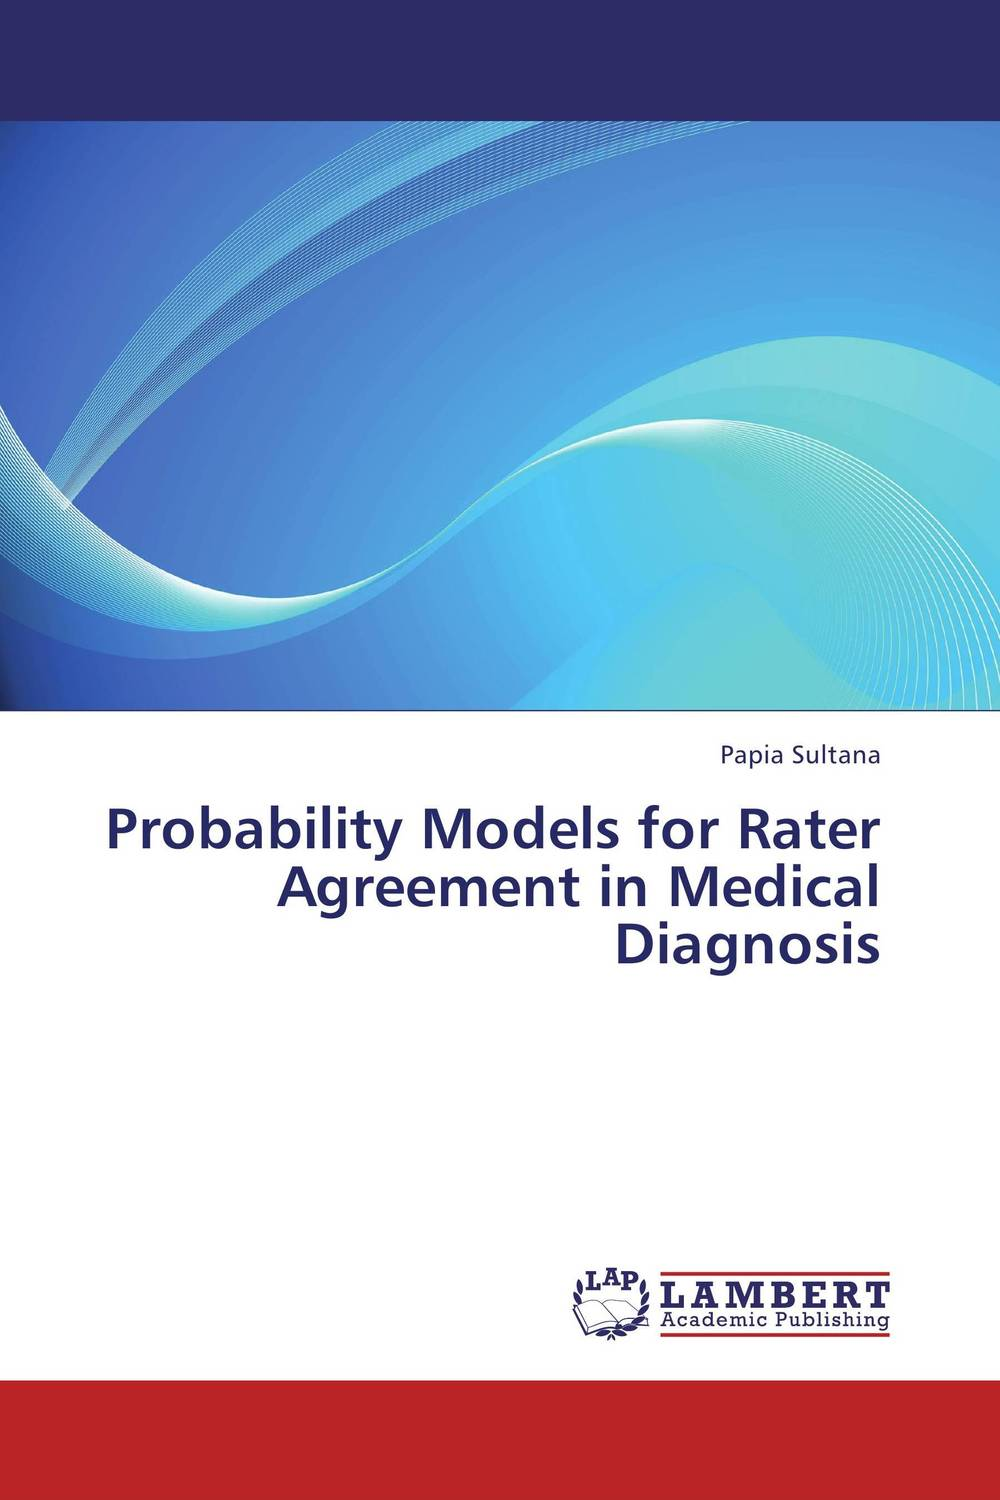 Probability Models for Rater Agreement in Medical Diagnosis